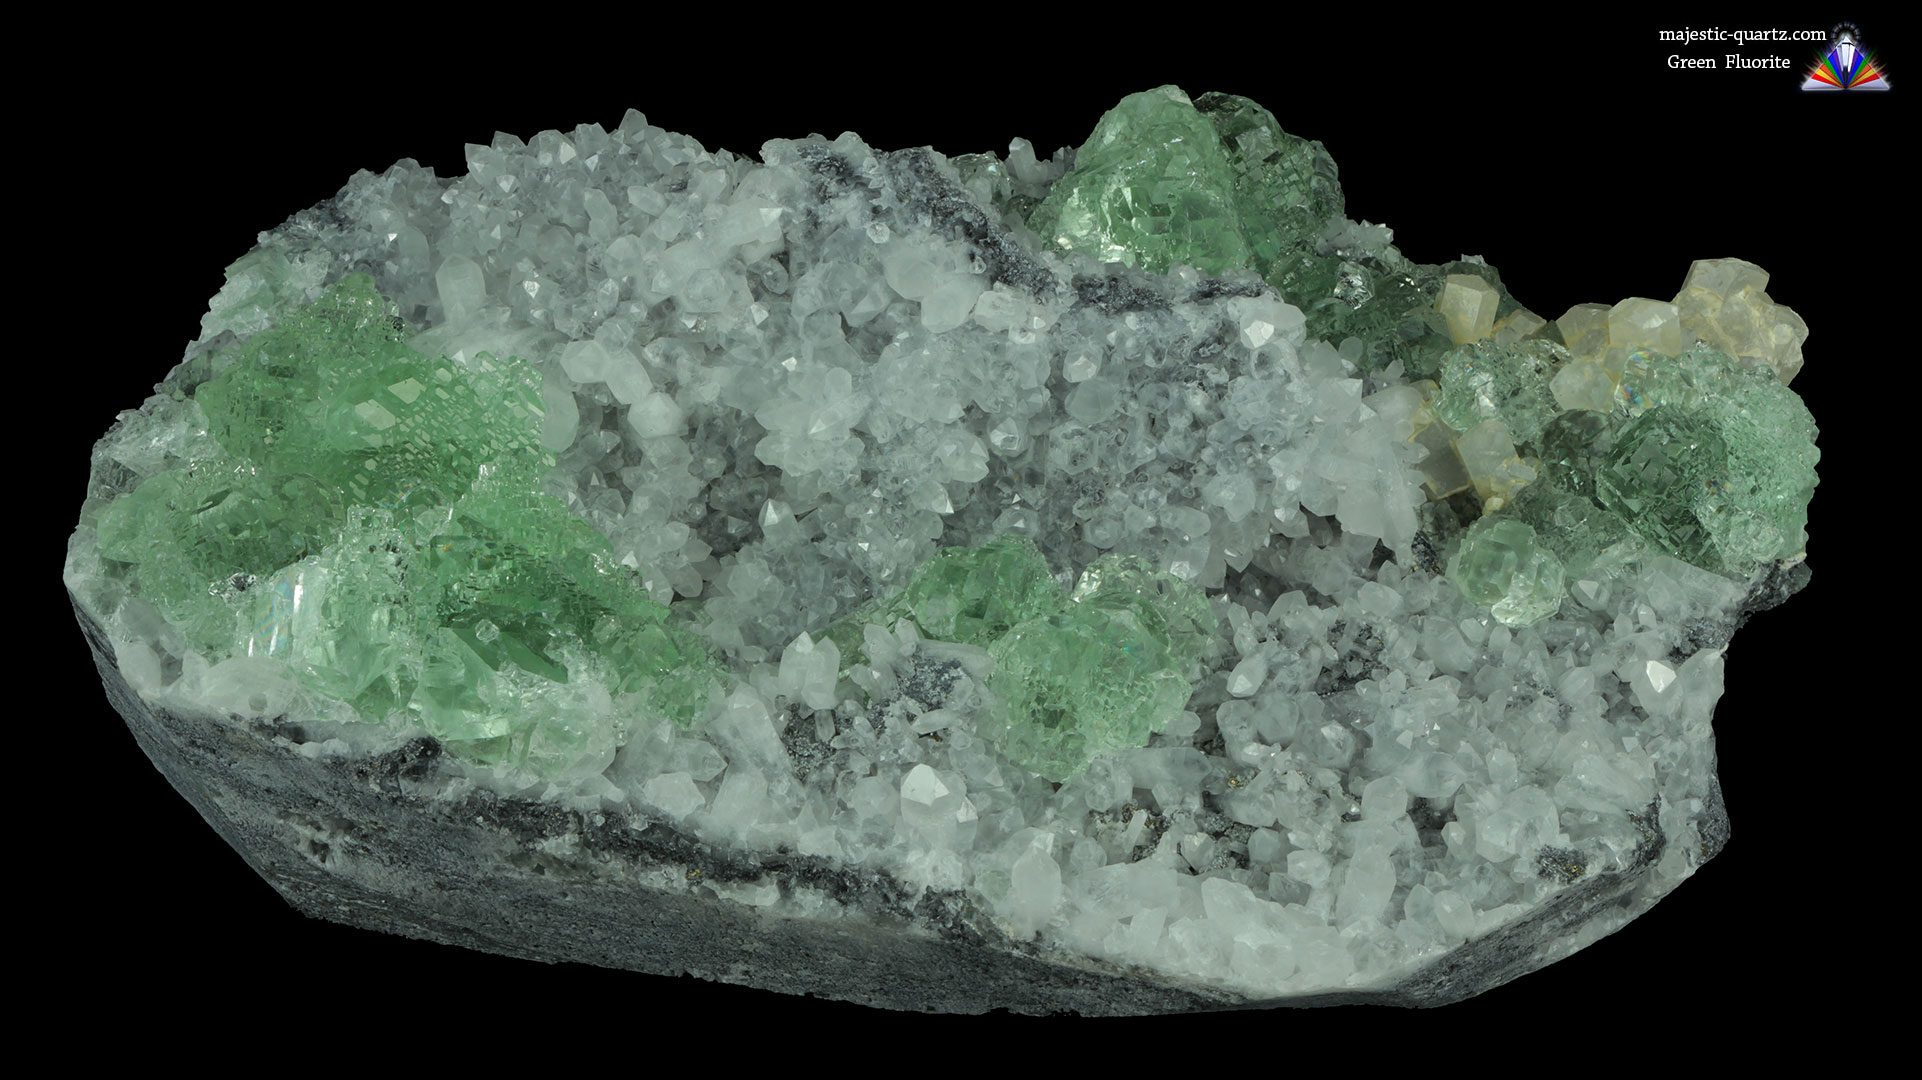 Green Fluorite Cluster Mineral Specimen - Photograph by Anthony Bradford